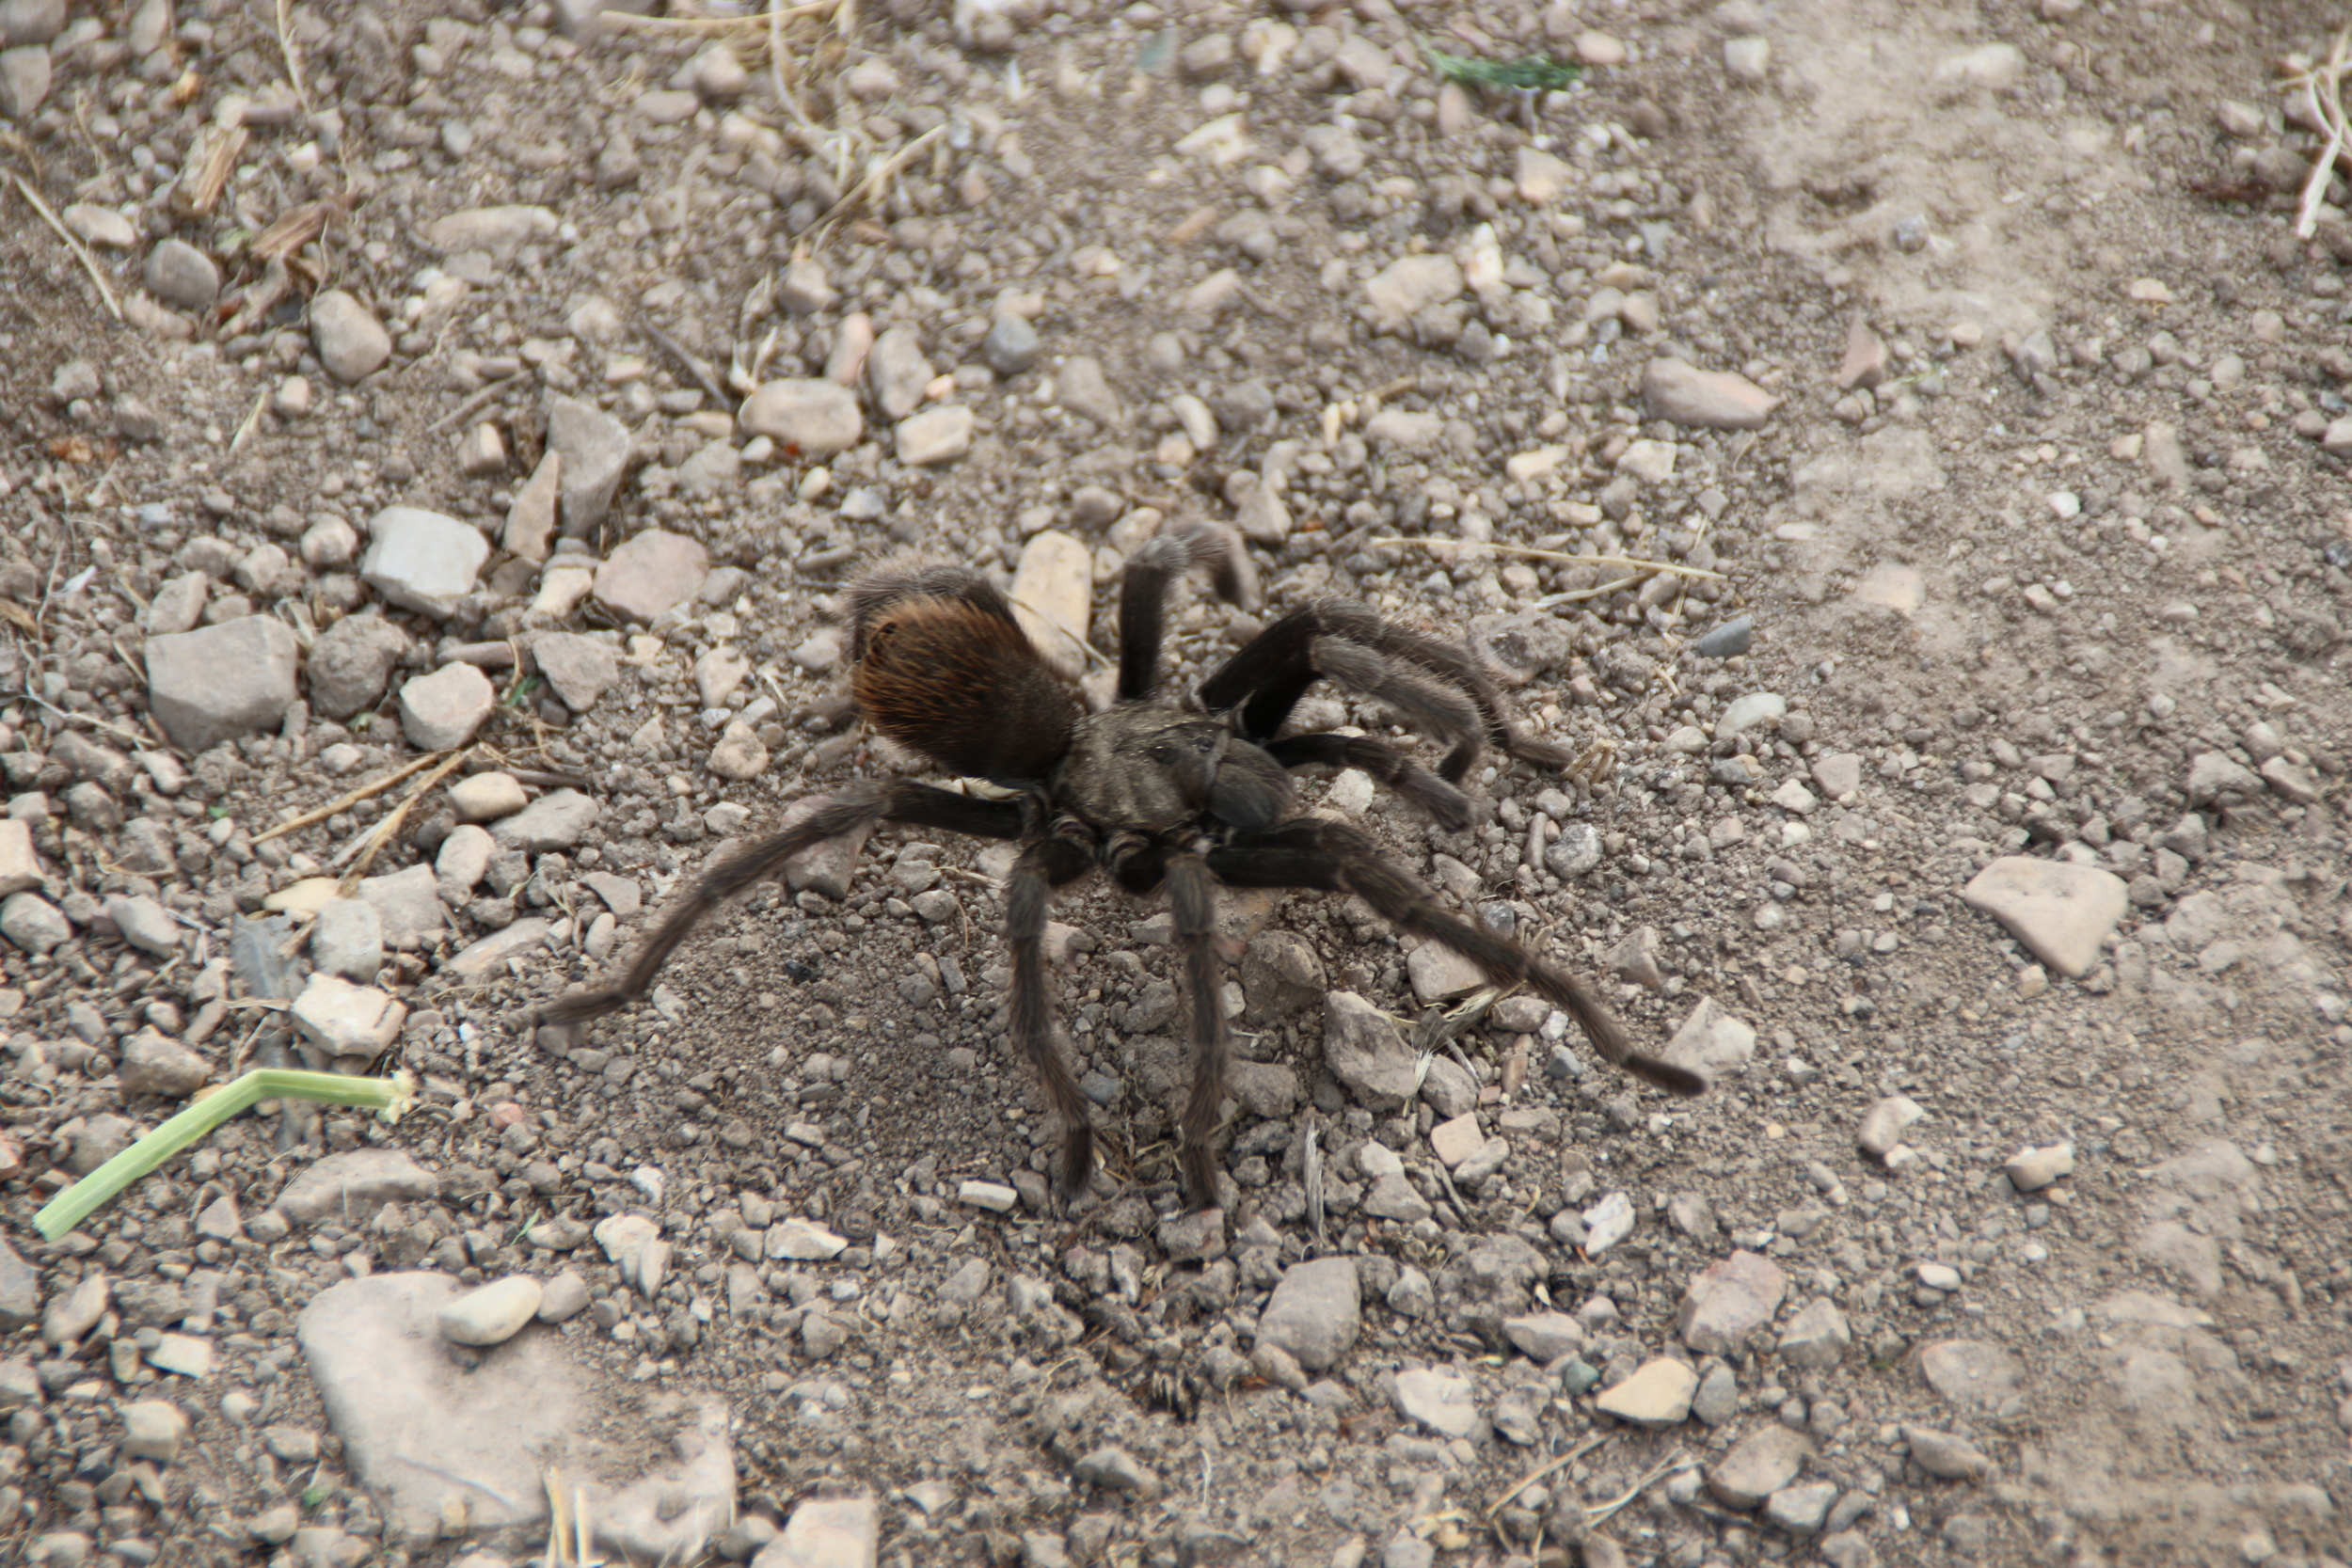 We found this tarantula crossing the road through Foxen Canyon